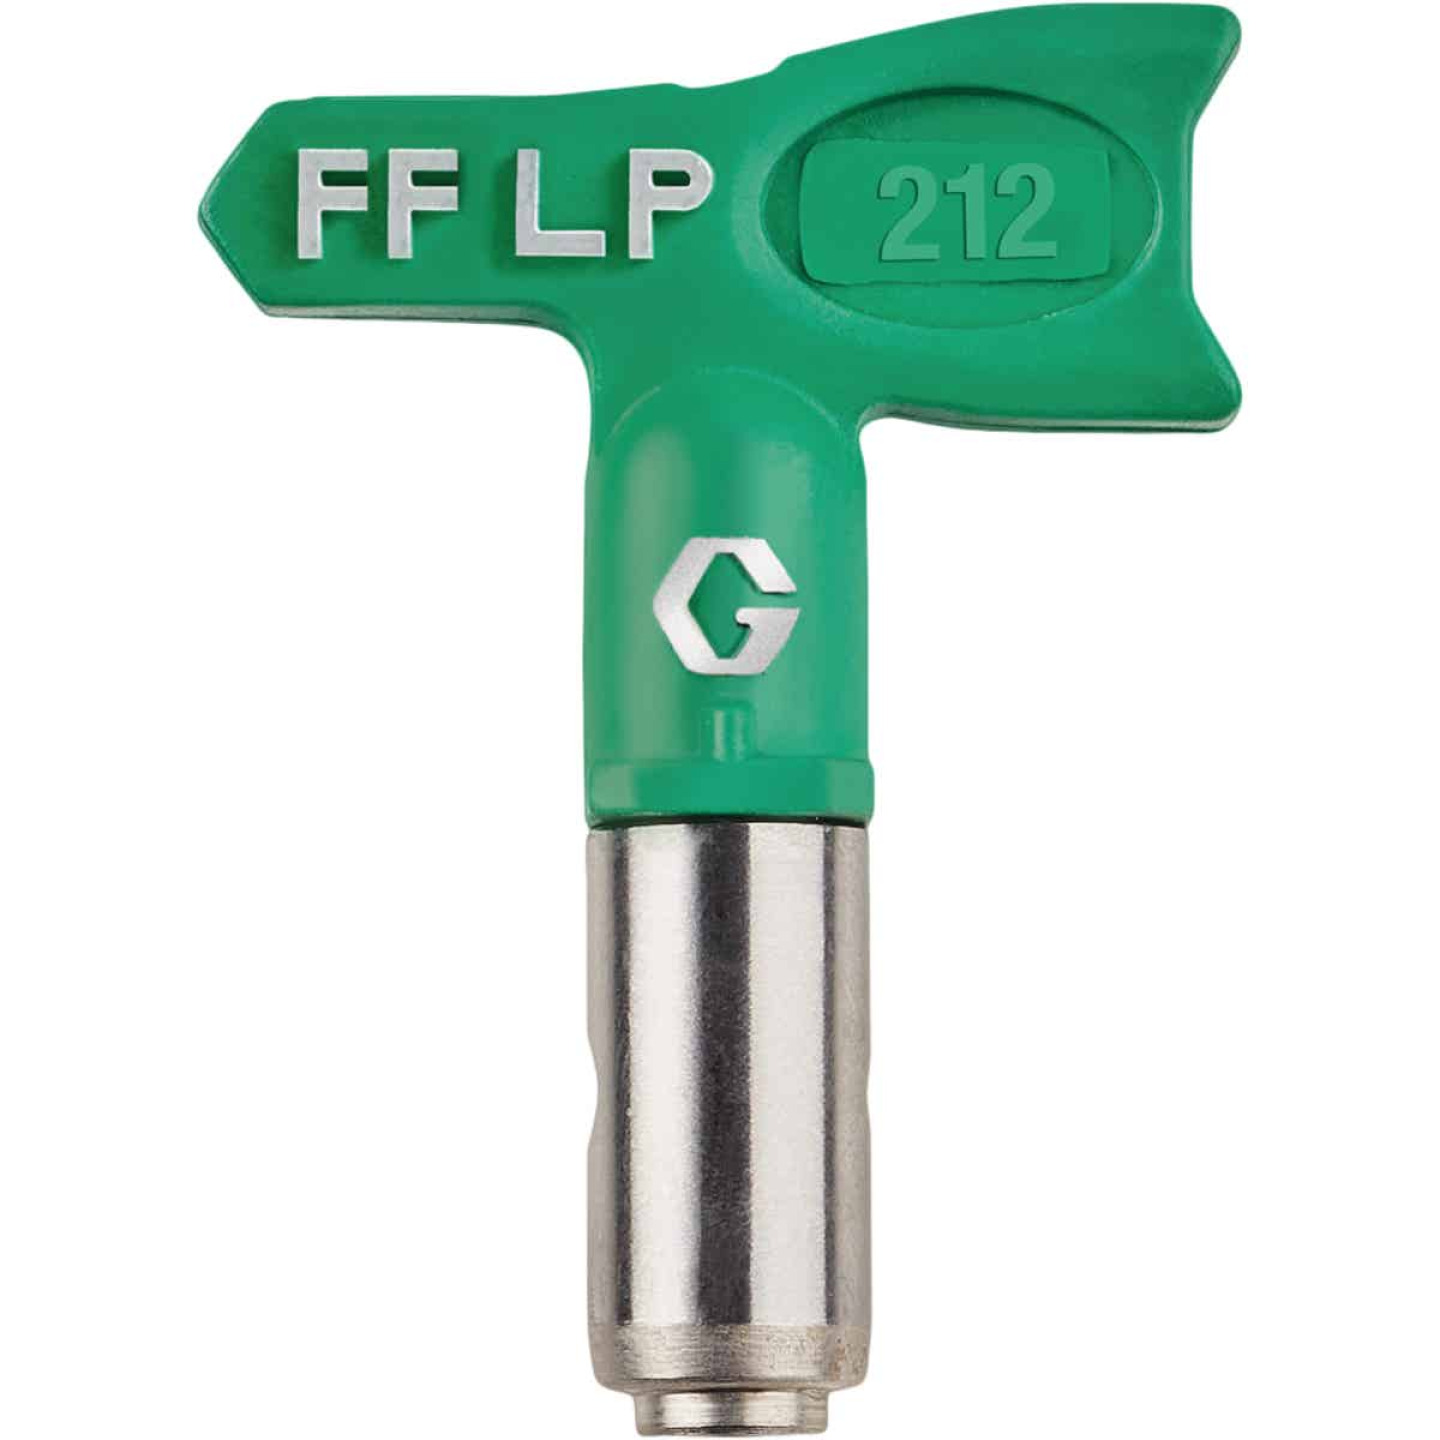 Graco Fine Finish Low Pressure FFLP RAC X 212 SwitchTip 4 In. .012 Airless Spray Tip Image 1